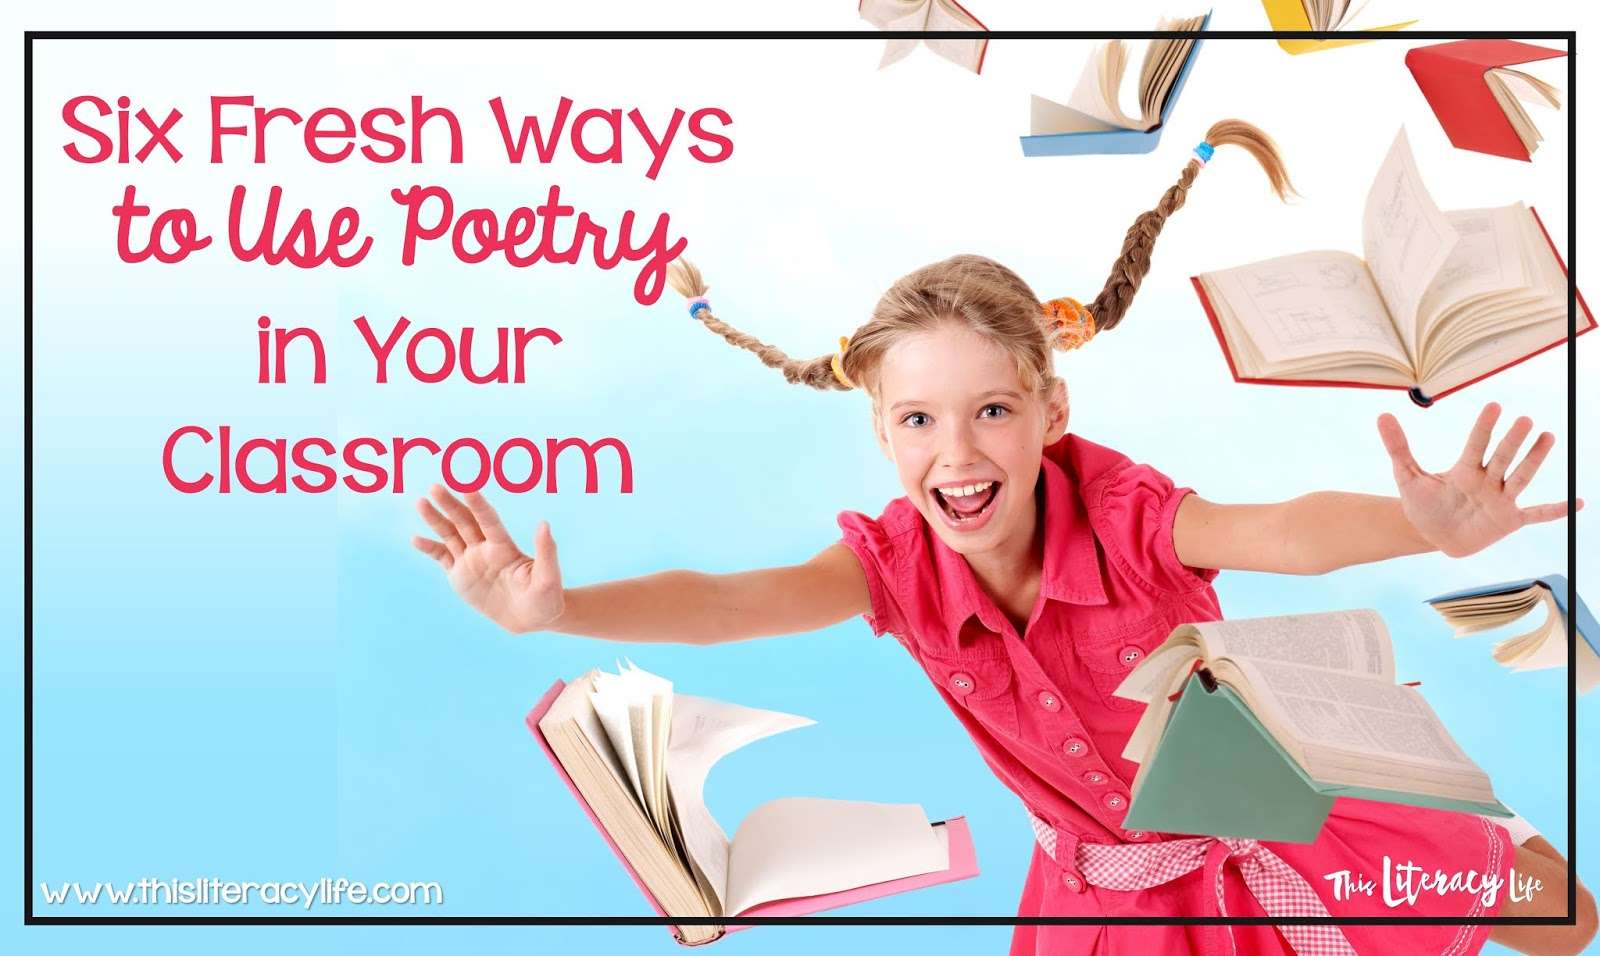 Using poetry to engage students in reading activities makes literacy instruction fun and exciting. These six ideas will help keep poetry fresh all year long.